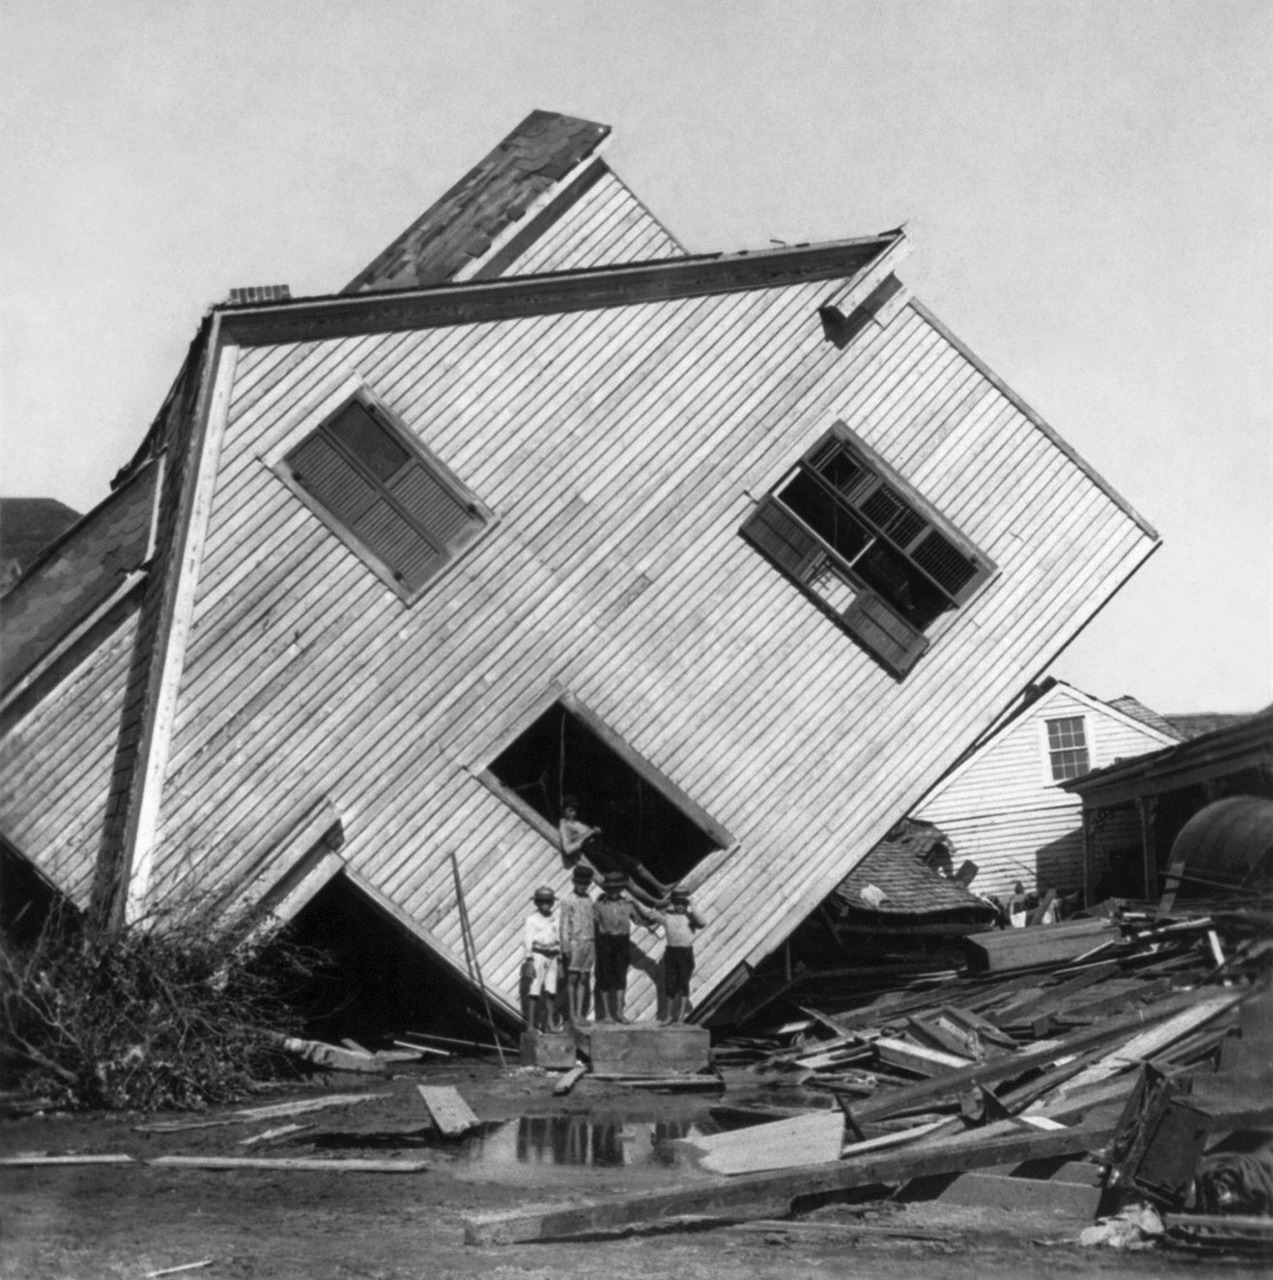 hurricane,devastation,destruction,galveston,texas,1900,forward,destroyed,misfortune,bad luck,natural disaster,disaster,homeless,free pictures, free photos, free images, royalty free, free illustrations, public domain